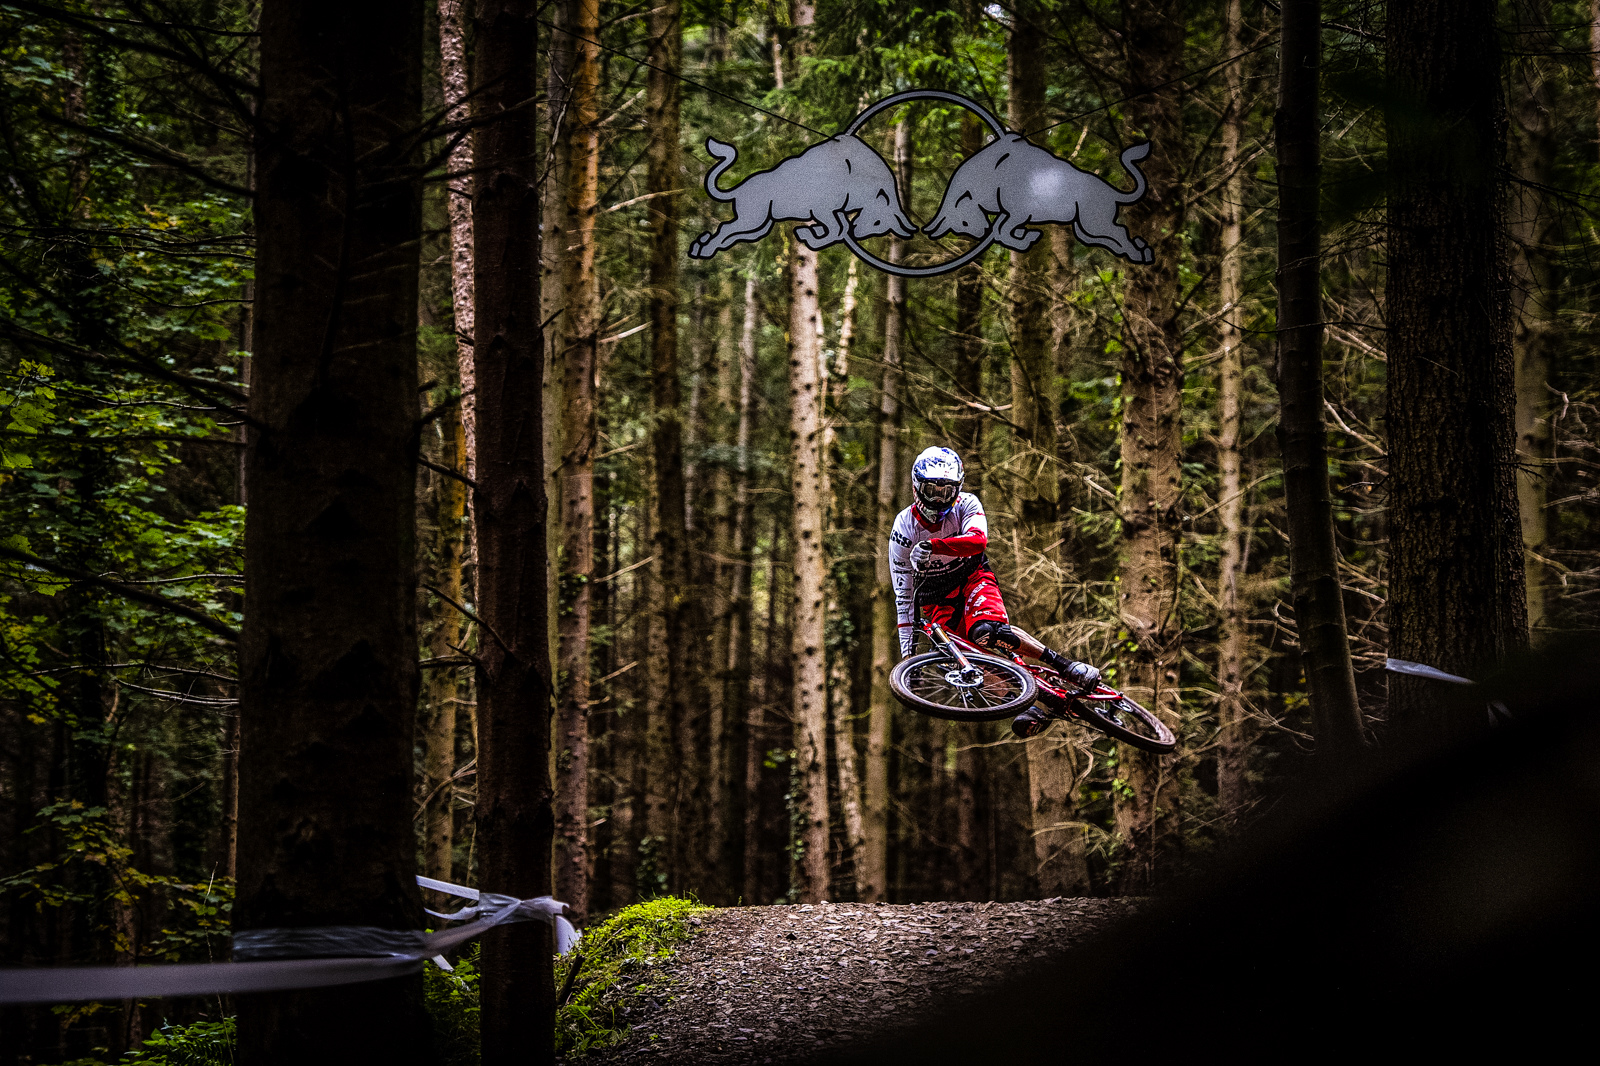 Effortless style from the 2x DH World Champ.